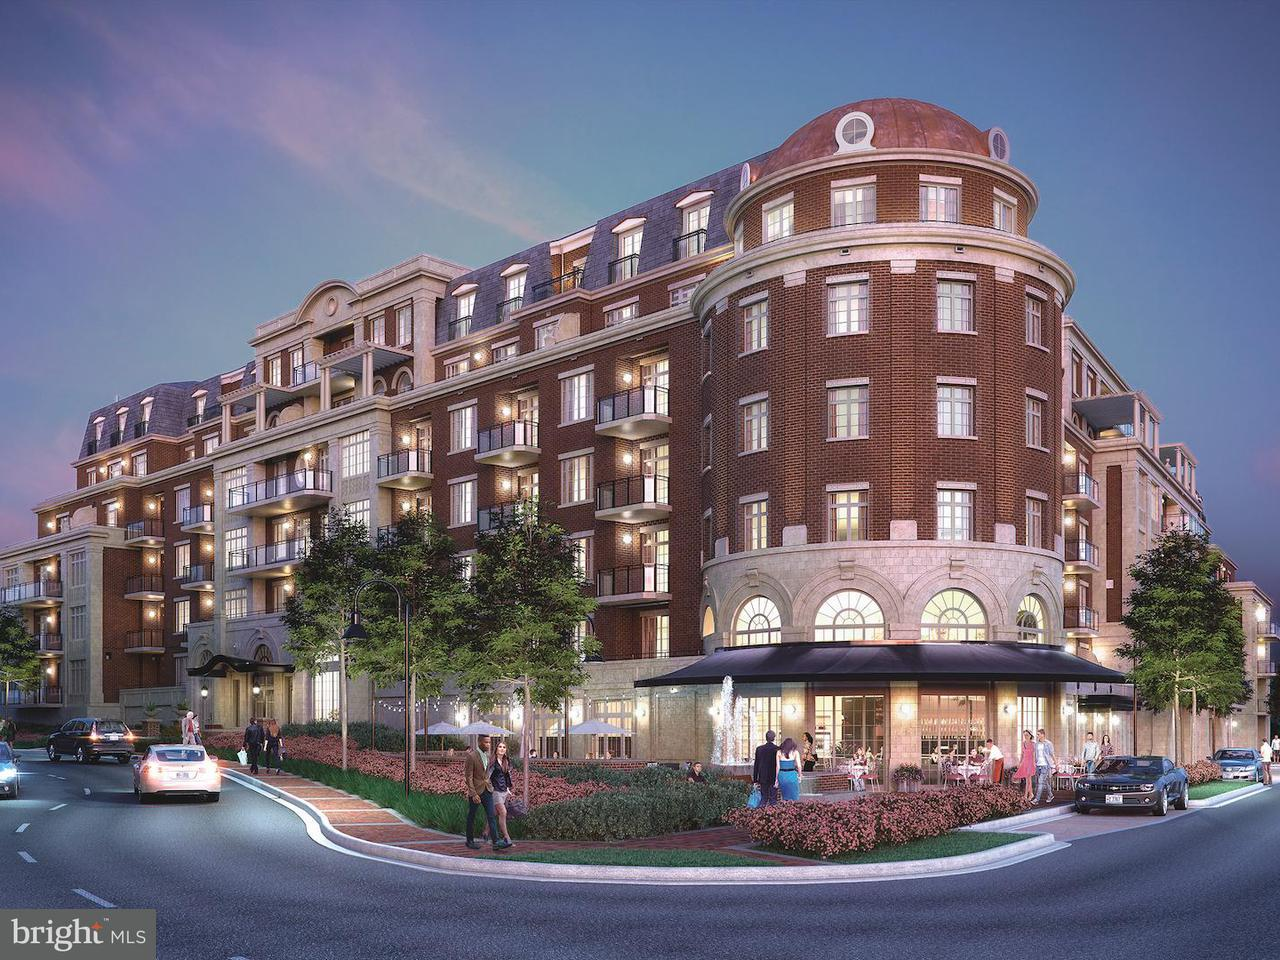 Condominium for Sale at 6900 Fleetwood Rd #509 6900 Fleetwood Rd #509 McLean, Virginia 22101 United States